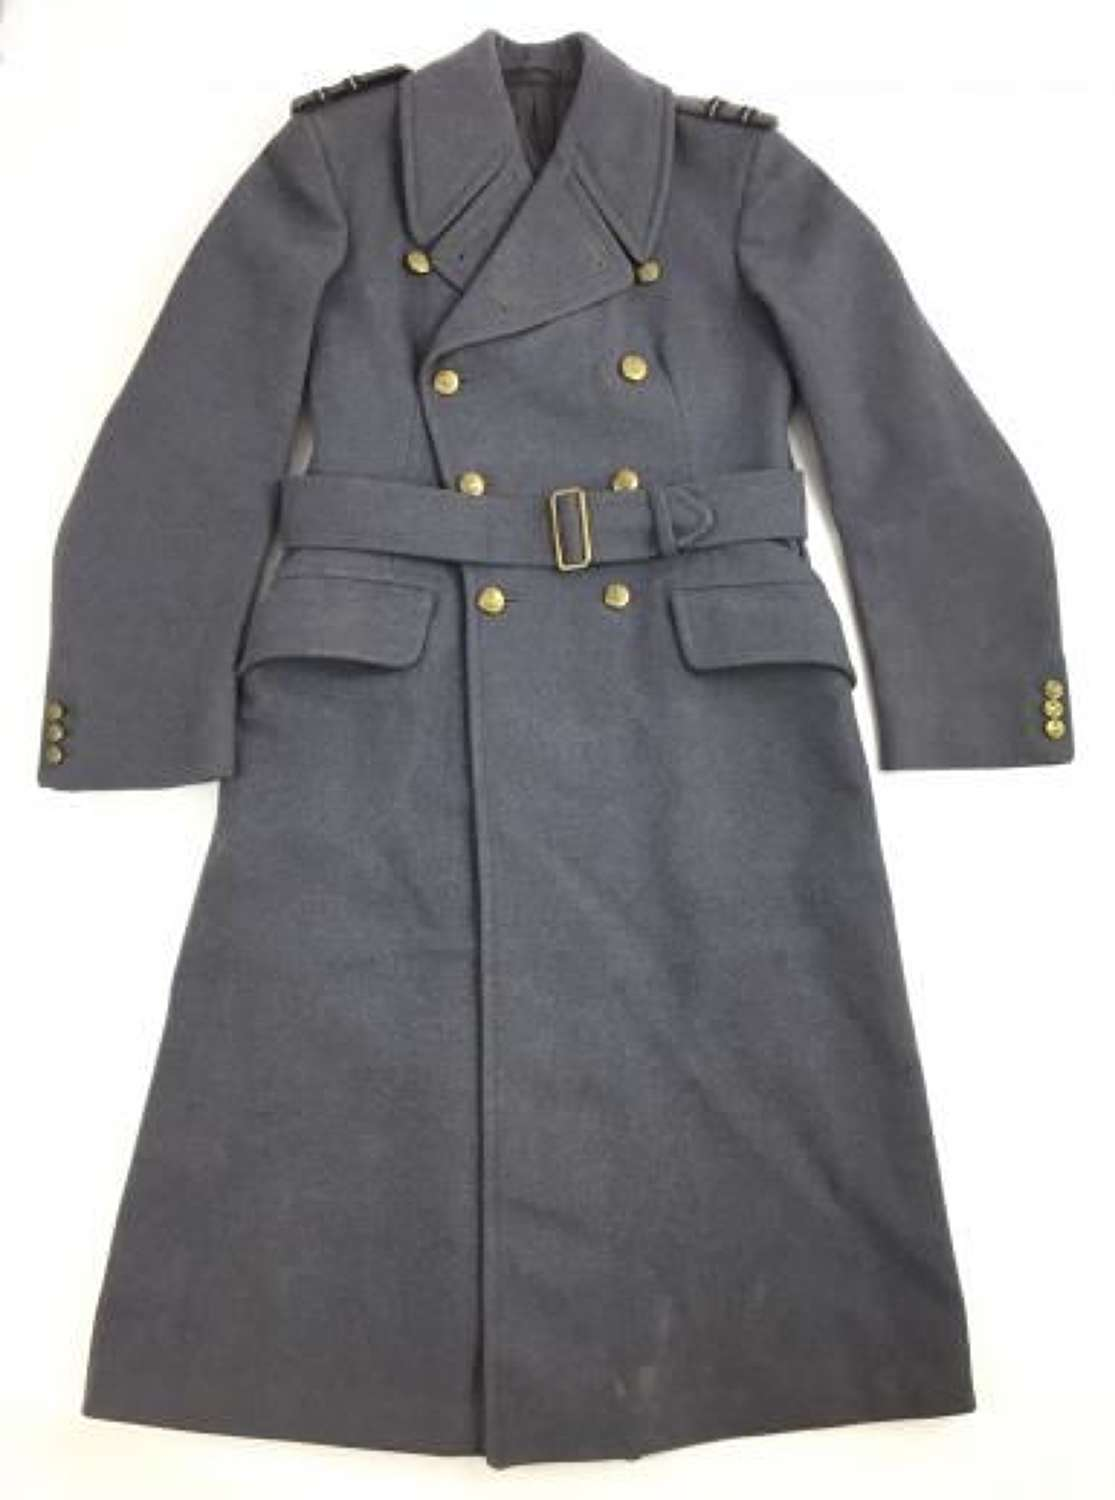 Original WW2 RAF Officers Greatcoat - Issue Label